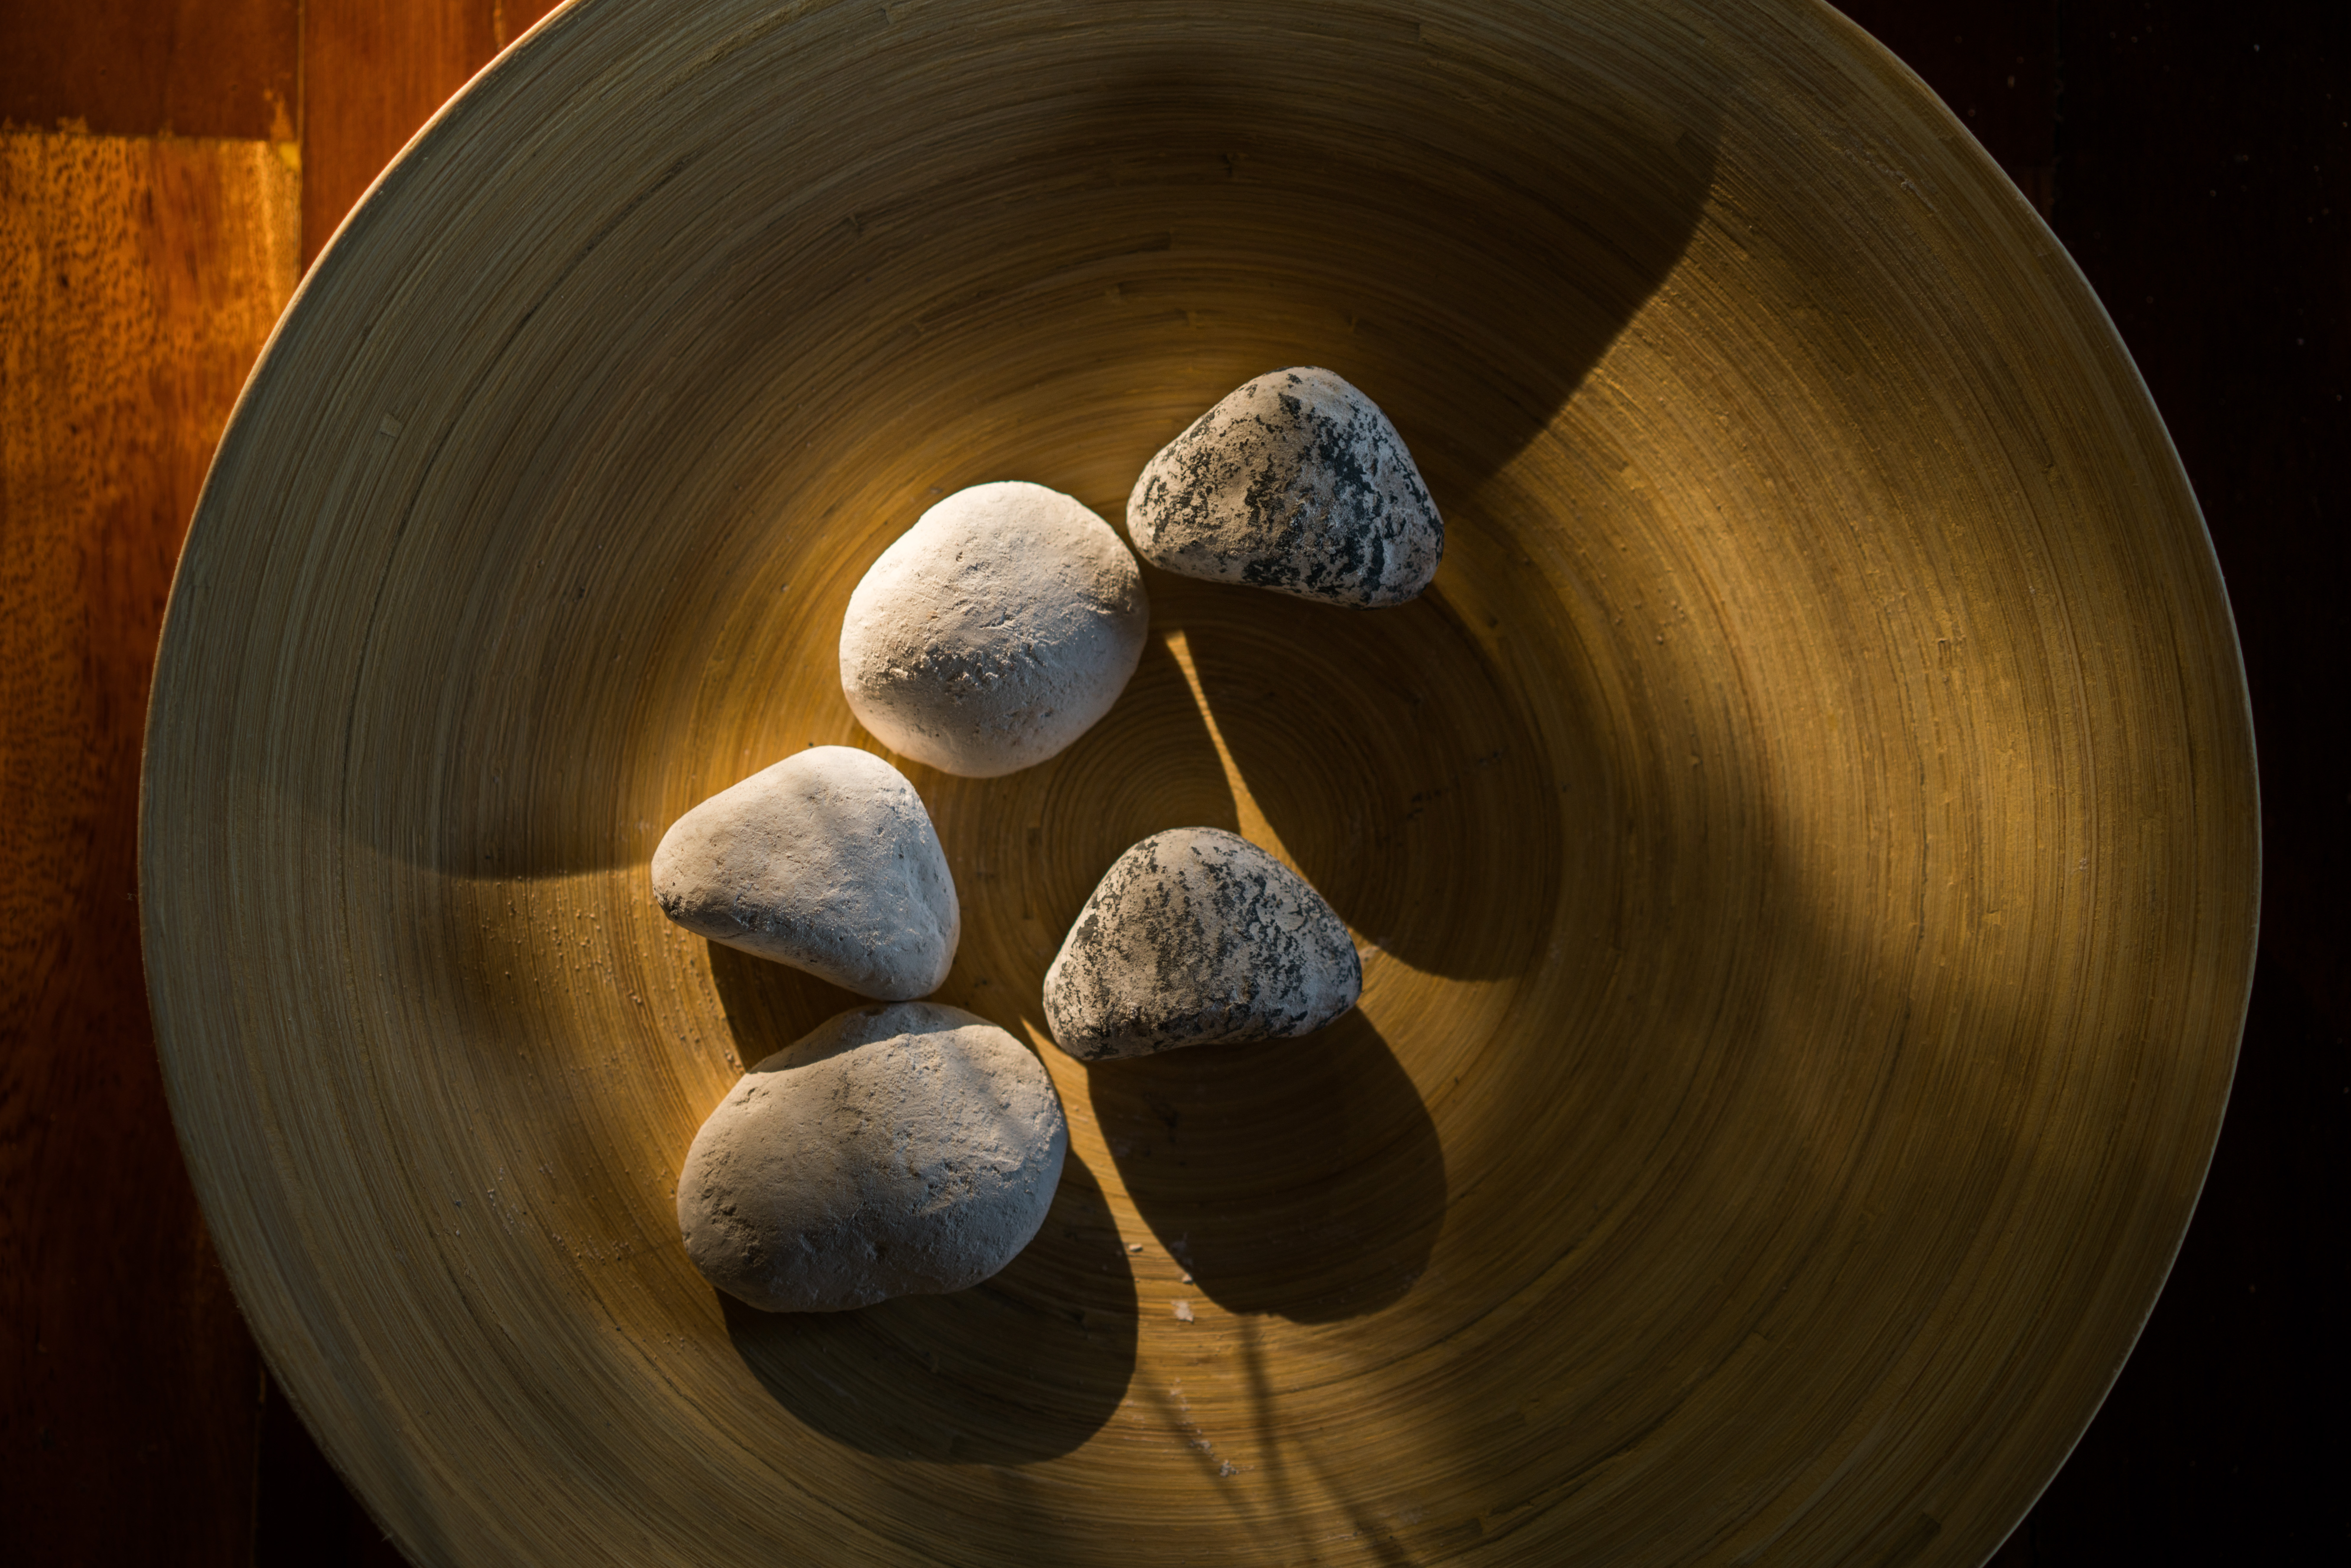 aura_spa_stones_in_wooden_bowl